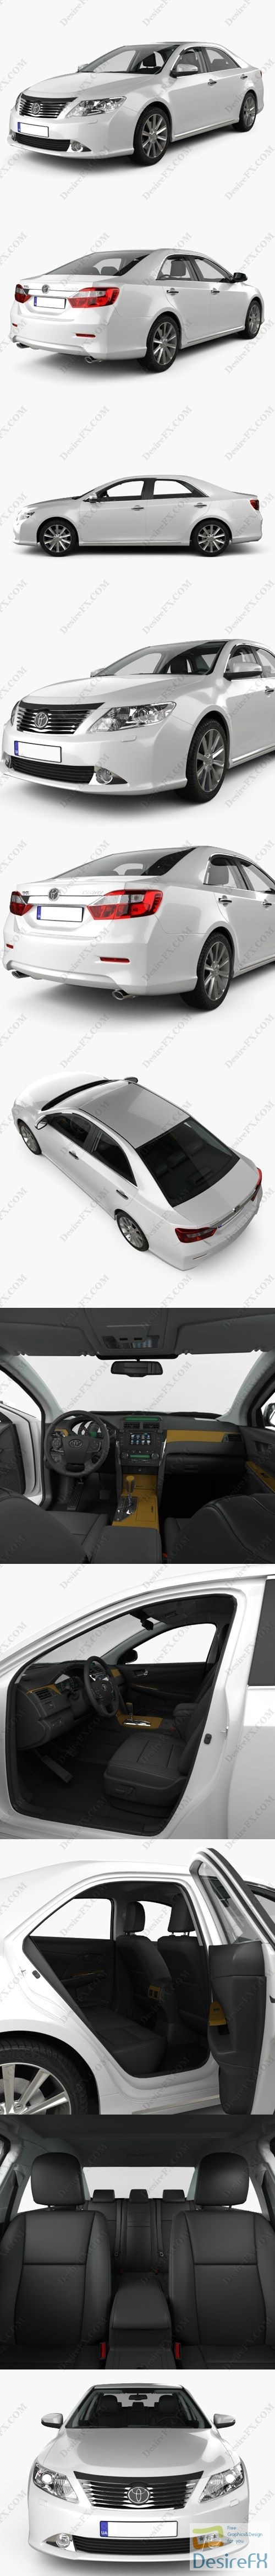 Toyota Camry 2011 with HQ interior 3D Model